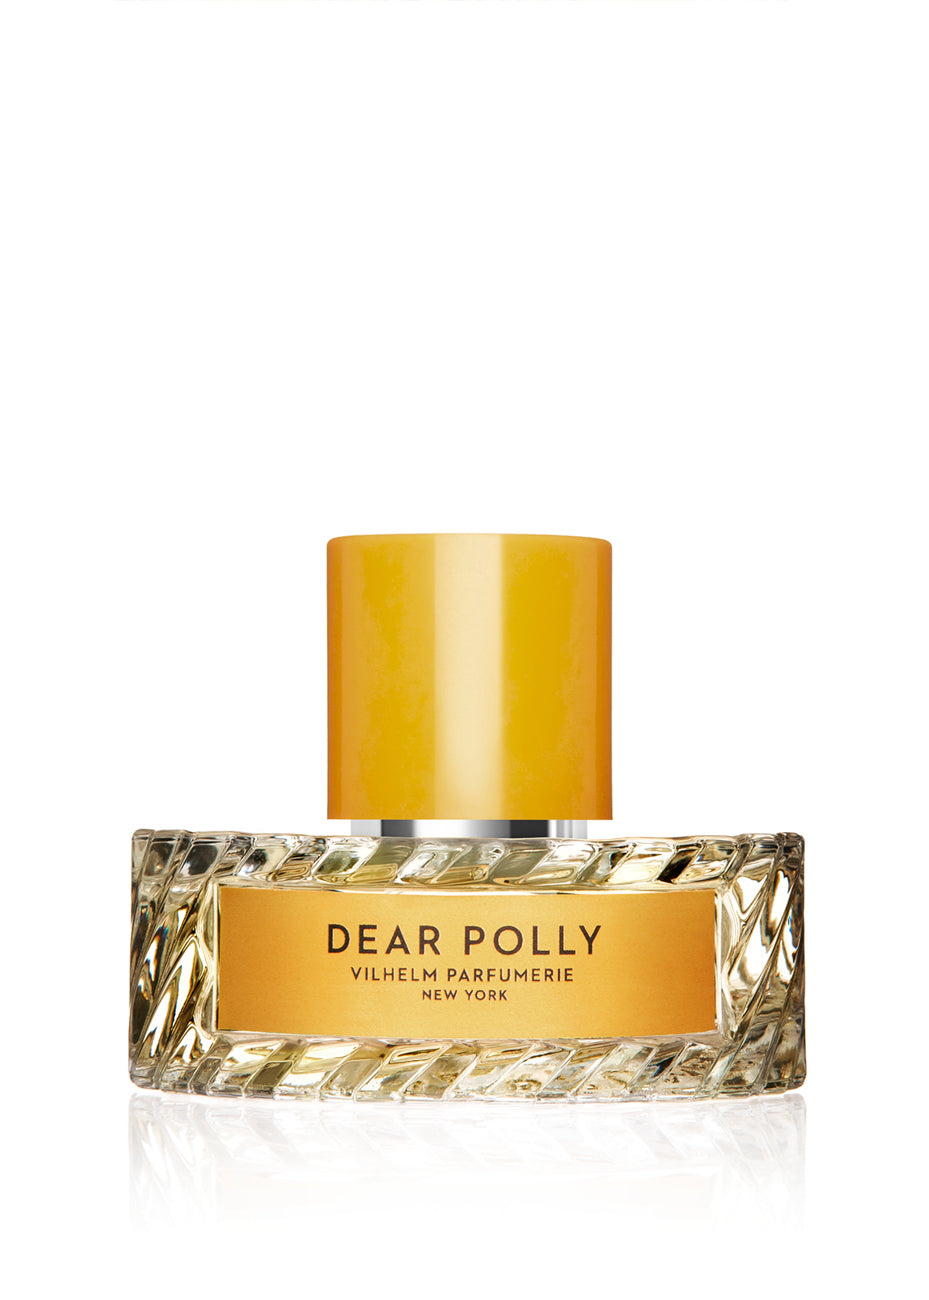 Dear Polly Eau De Parfum 50ml